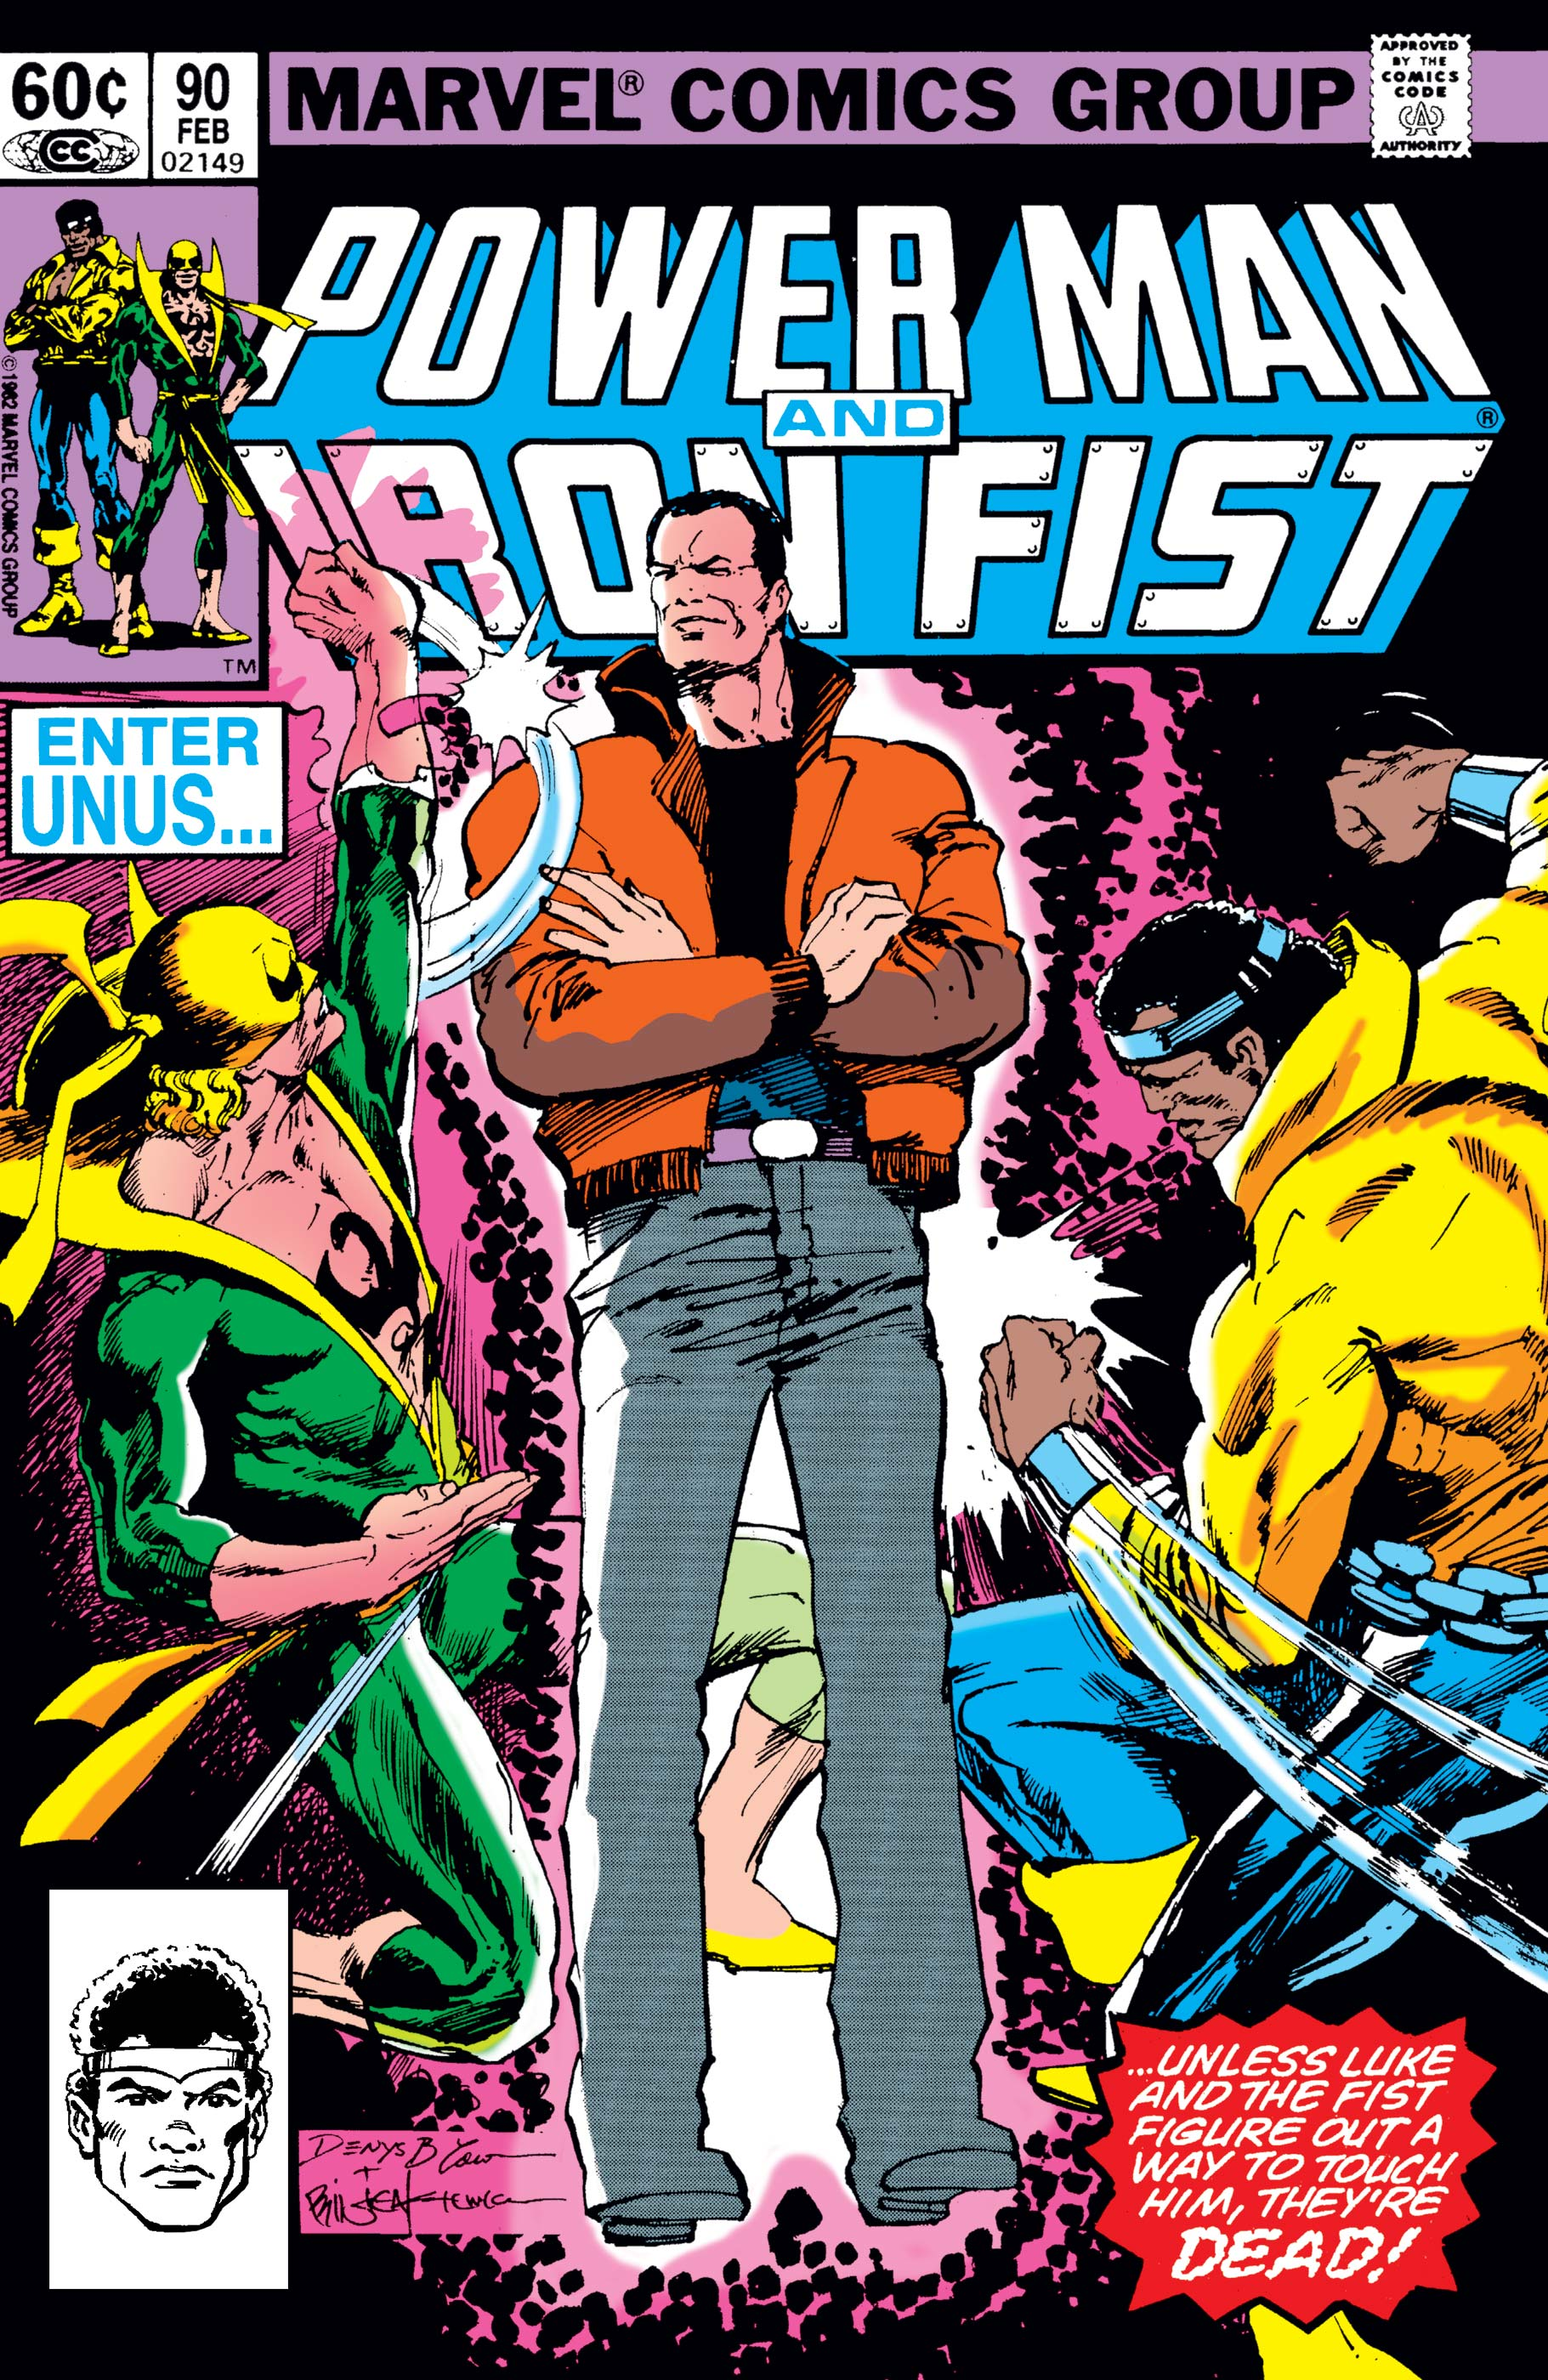 Power Man and Iron Fist (1978) #90